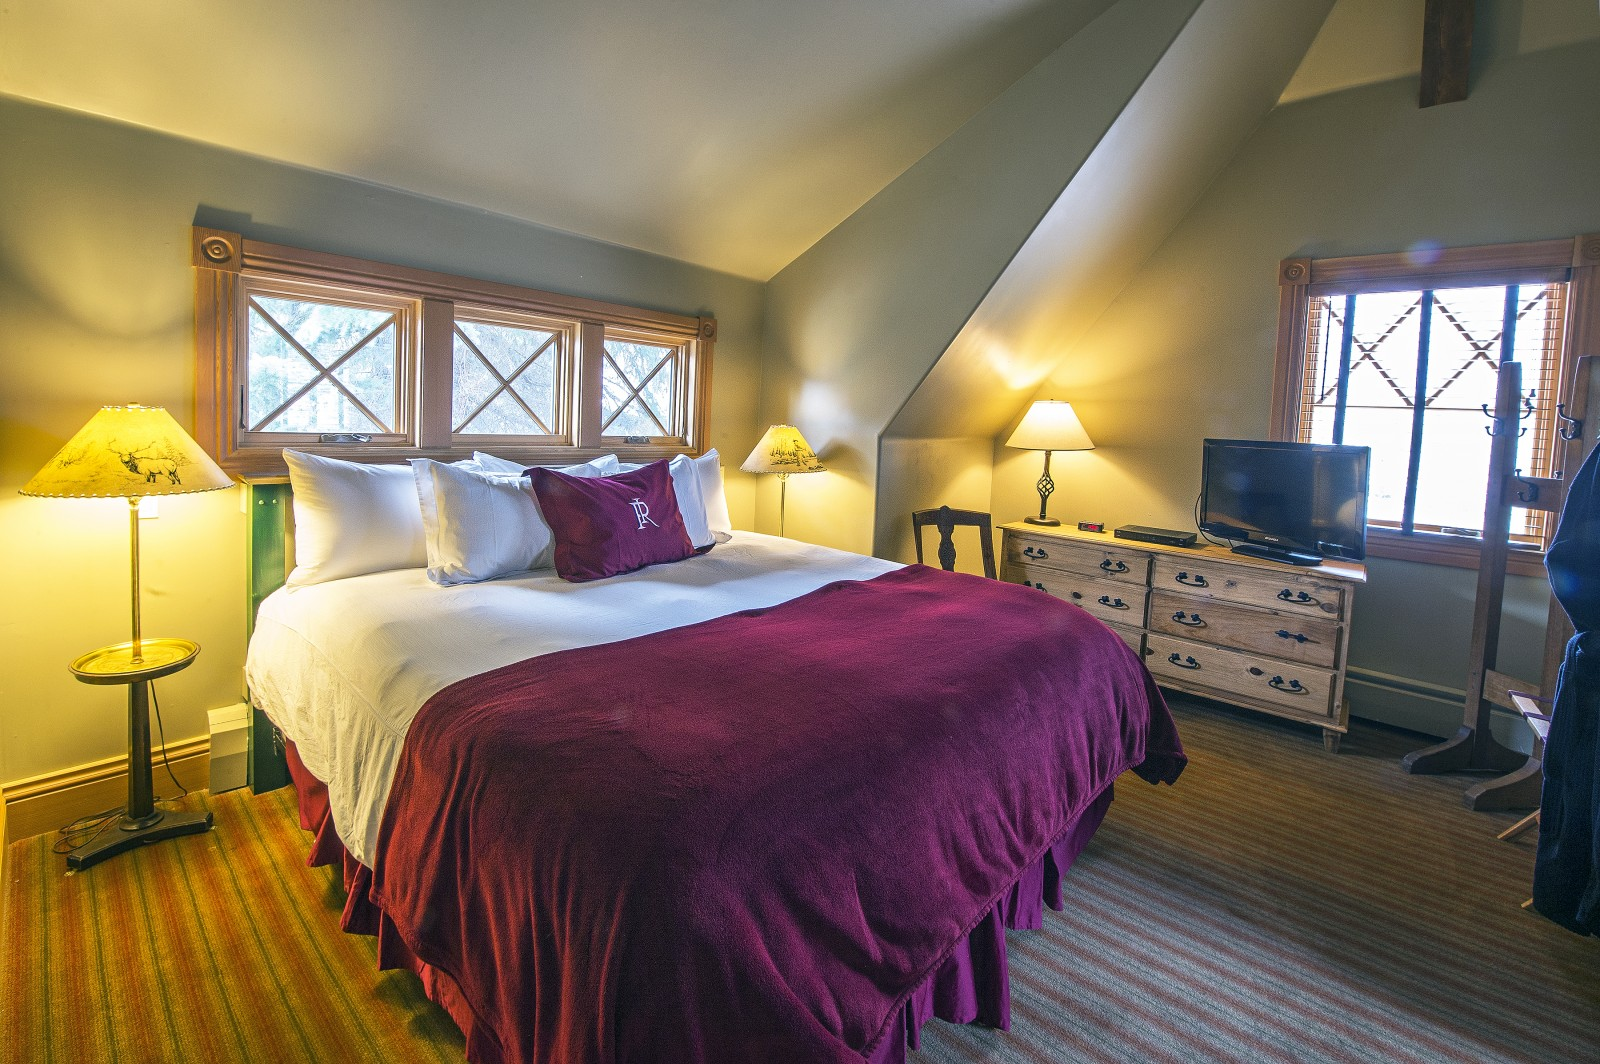 The Chalet Hotel Room at Redstone Inn, Colorado